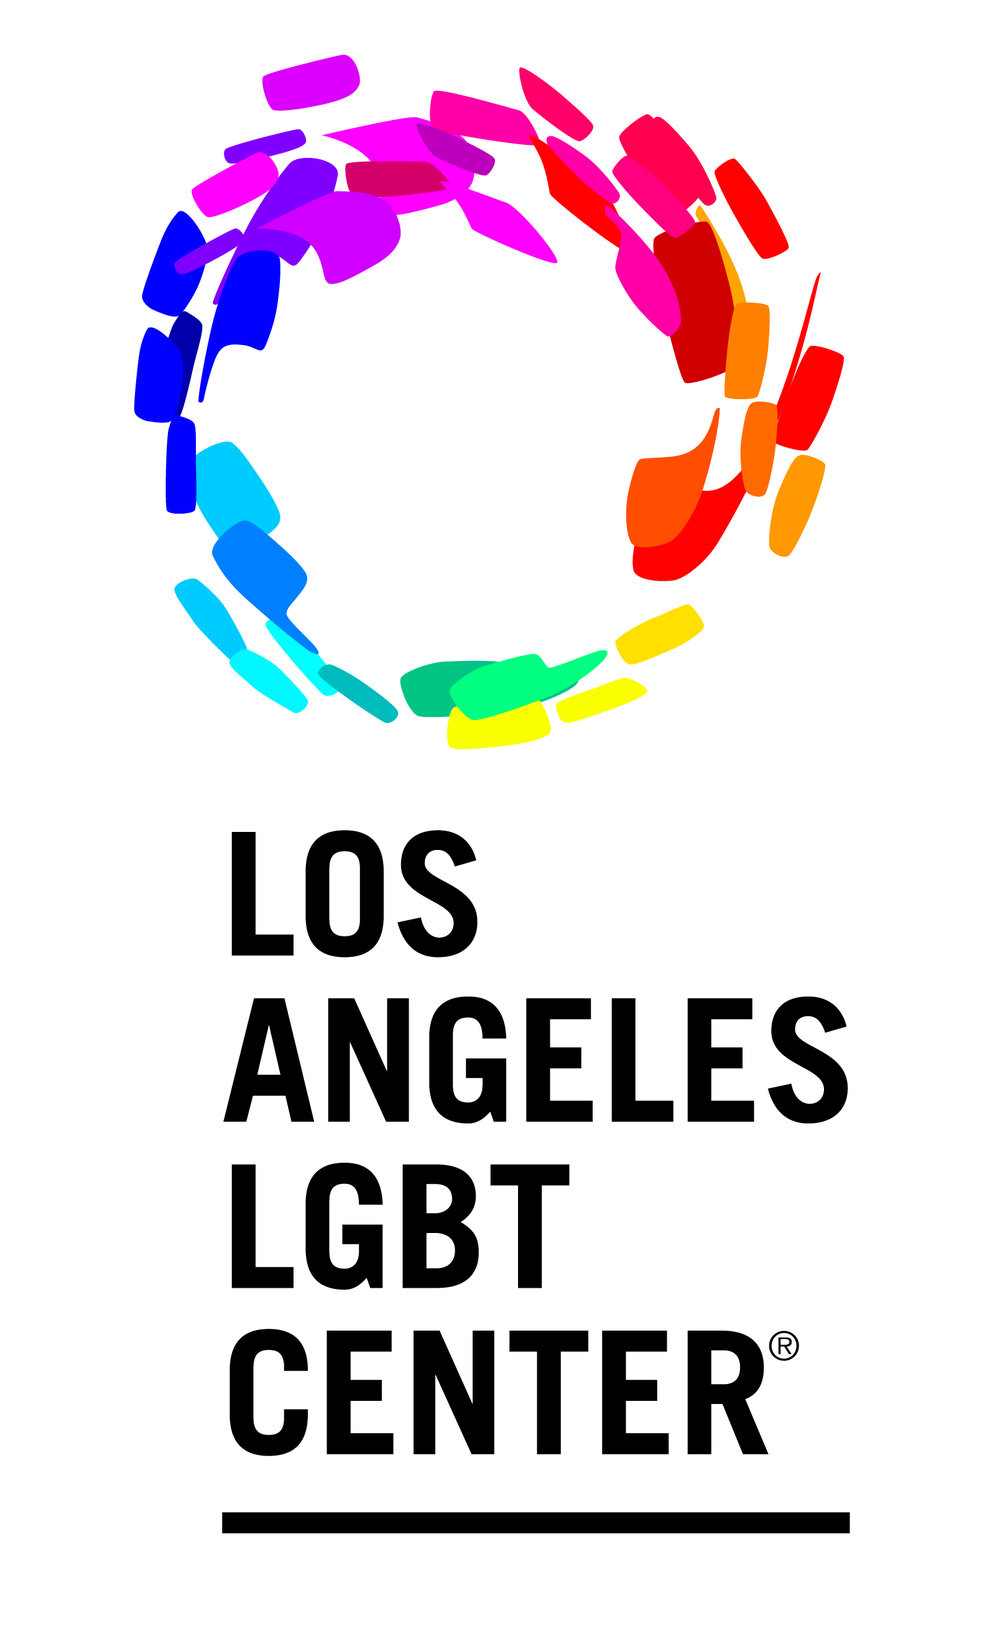 LOS ANGELS LGBT CENTER  Since 1969 the Los Angeles LGBT Center has cared for, championed, and celebrated LGBT individuals and families in Los Angeles and beyond.  Today the Center's nearly 600 employees provide services for more LGBT people than any other organization in the world, offering programs, services, and global advocacy that span four broad categories: Health, Social Services and Housing, Culture and Education, Leadership and Advocacy.  Despite our size, scope, and determination to meet the growing demand for our services, we remain a lean, fiscally disciplined organization, earning a four-star Charity Navigator rating for six consecutive years.  We are an unstoppable force in the fight against bigotry and the struggle to build a better world, a world in which LGBT people can be healthy, equal, and complete members of society.  Learn more with our  At-A-Glance  fact sheet.   https://lalgbtcenter.org/    https://lalgbtcenter.org/how-you-can-help/donations